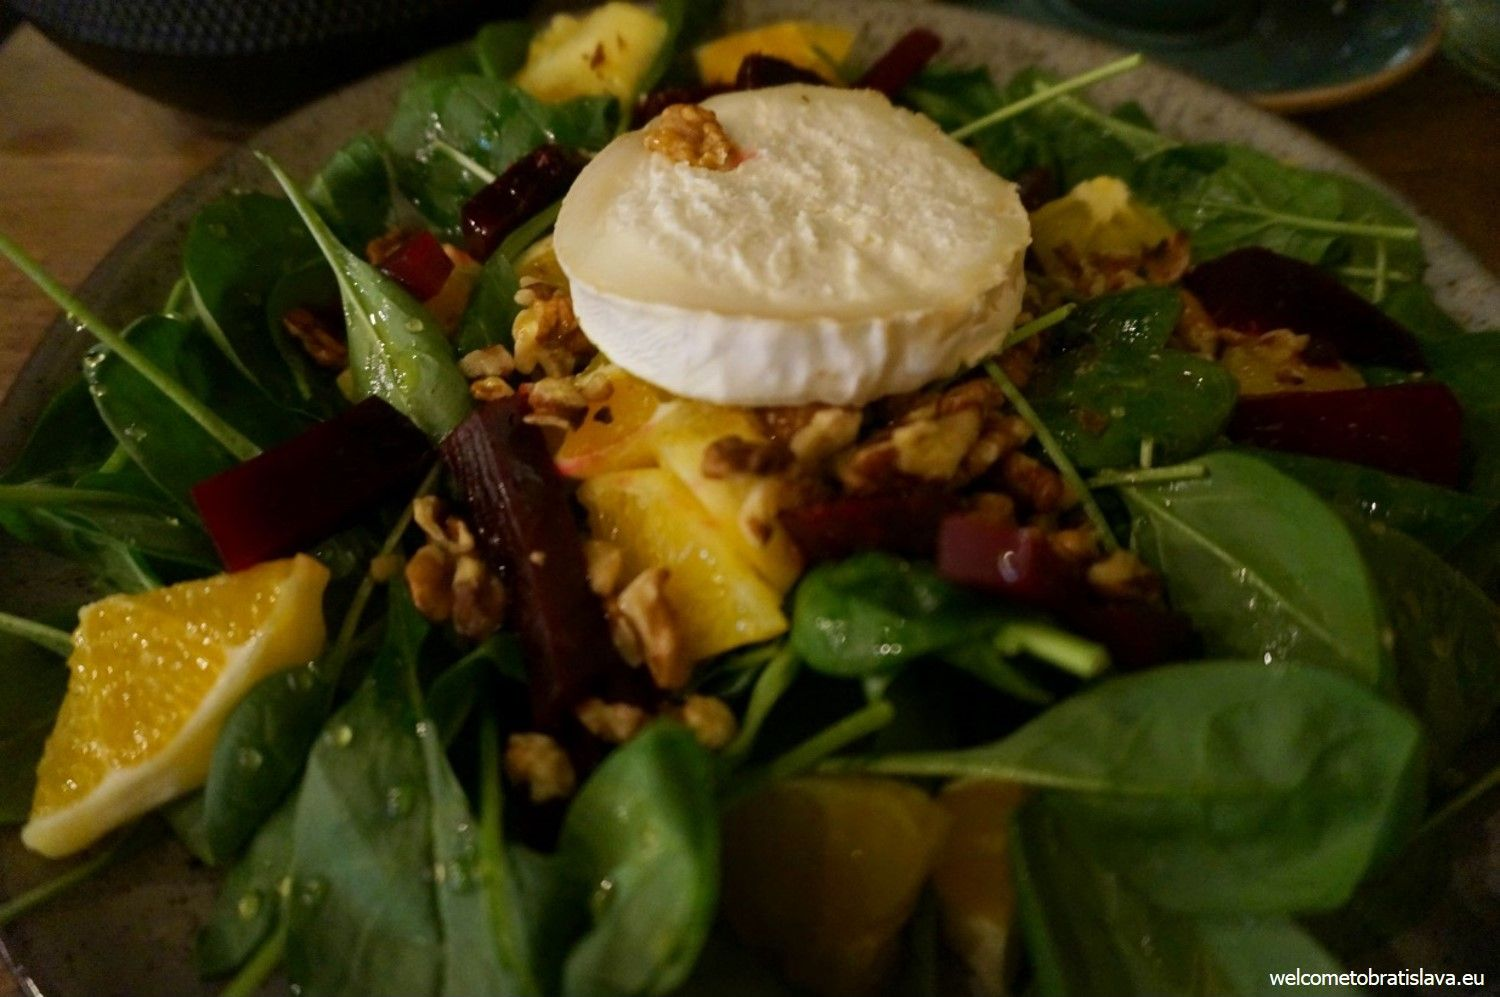 Goat cheese salad with nuts, roast beetroot, baby spinach and honey sauce